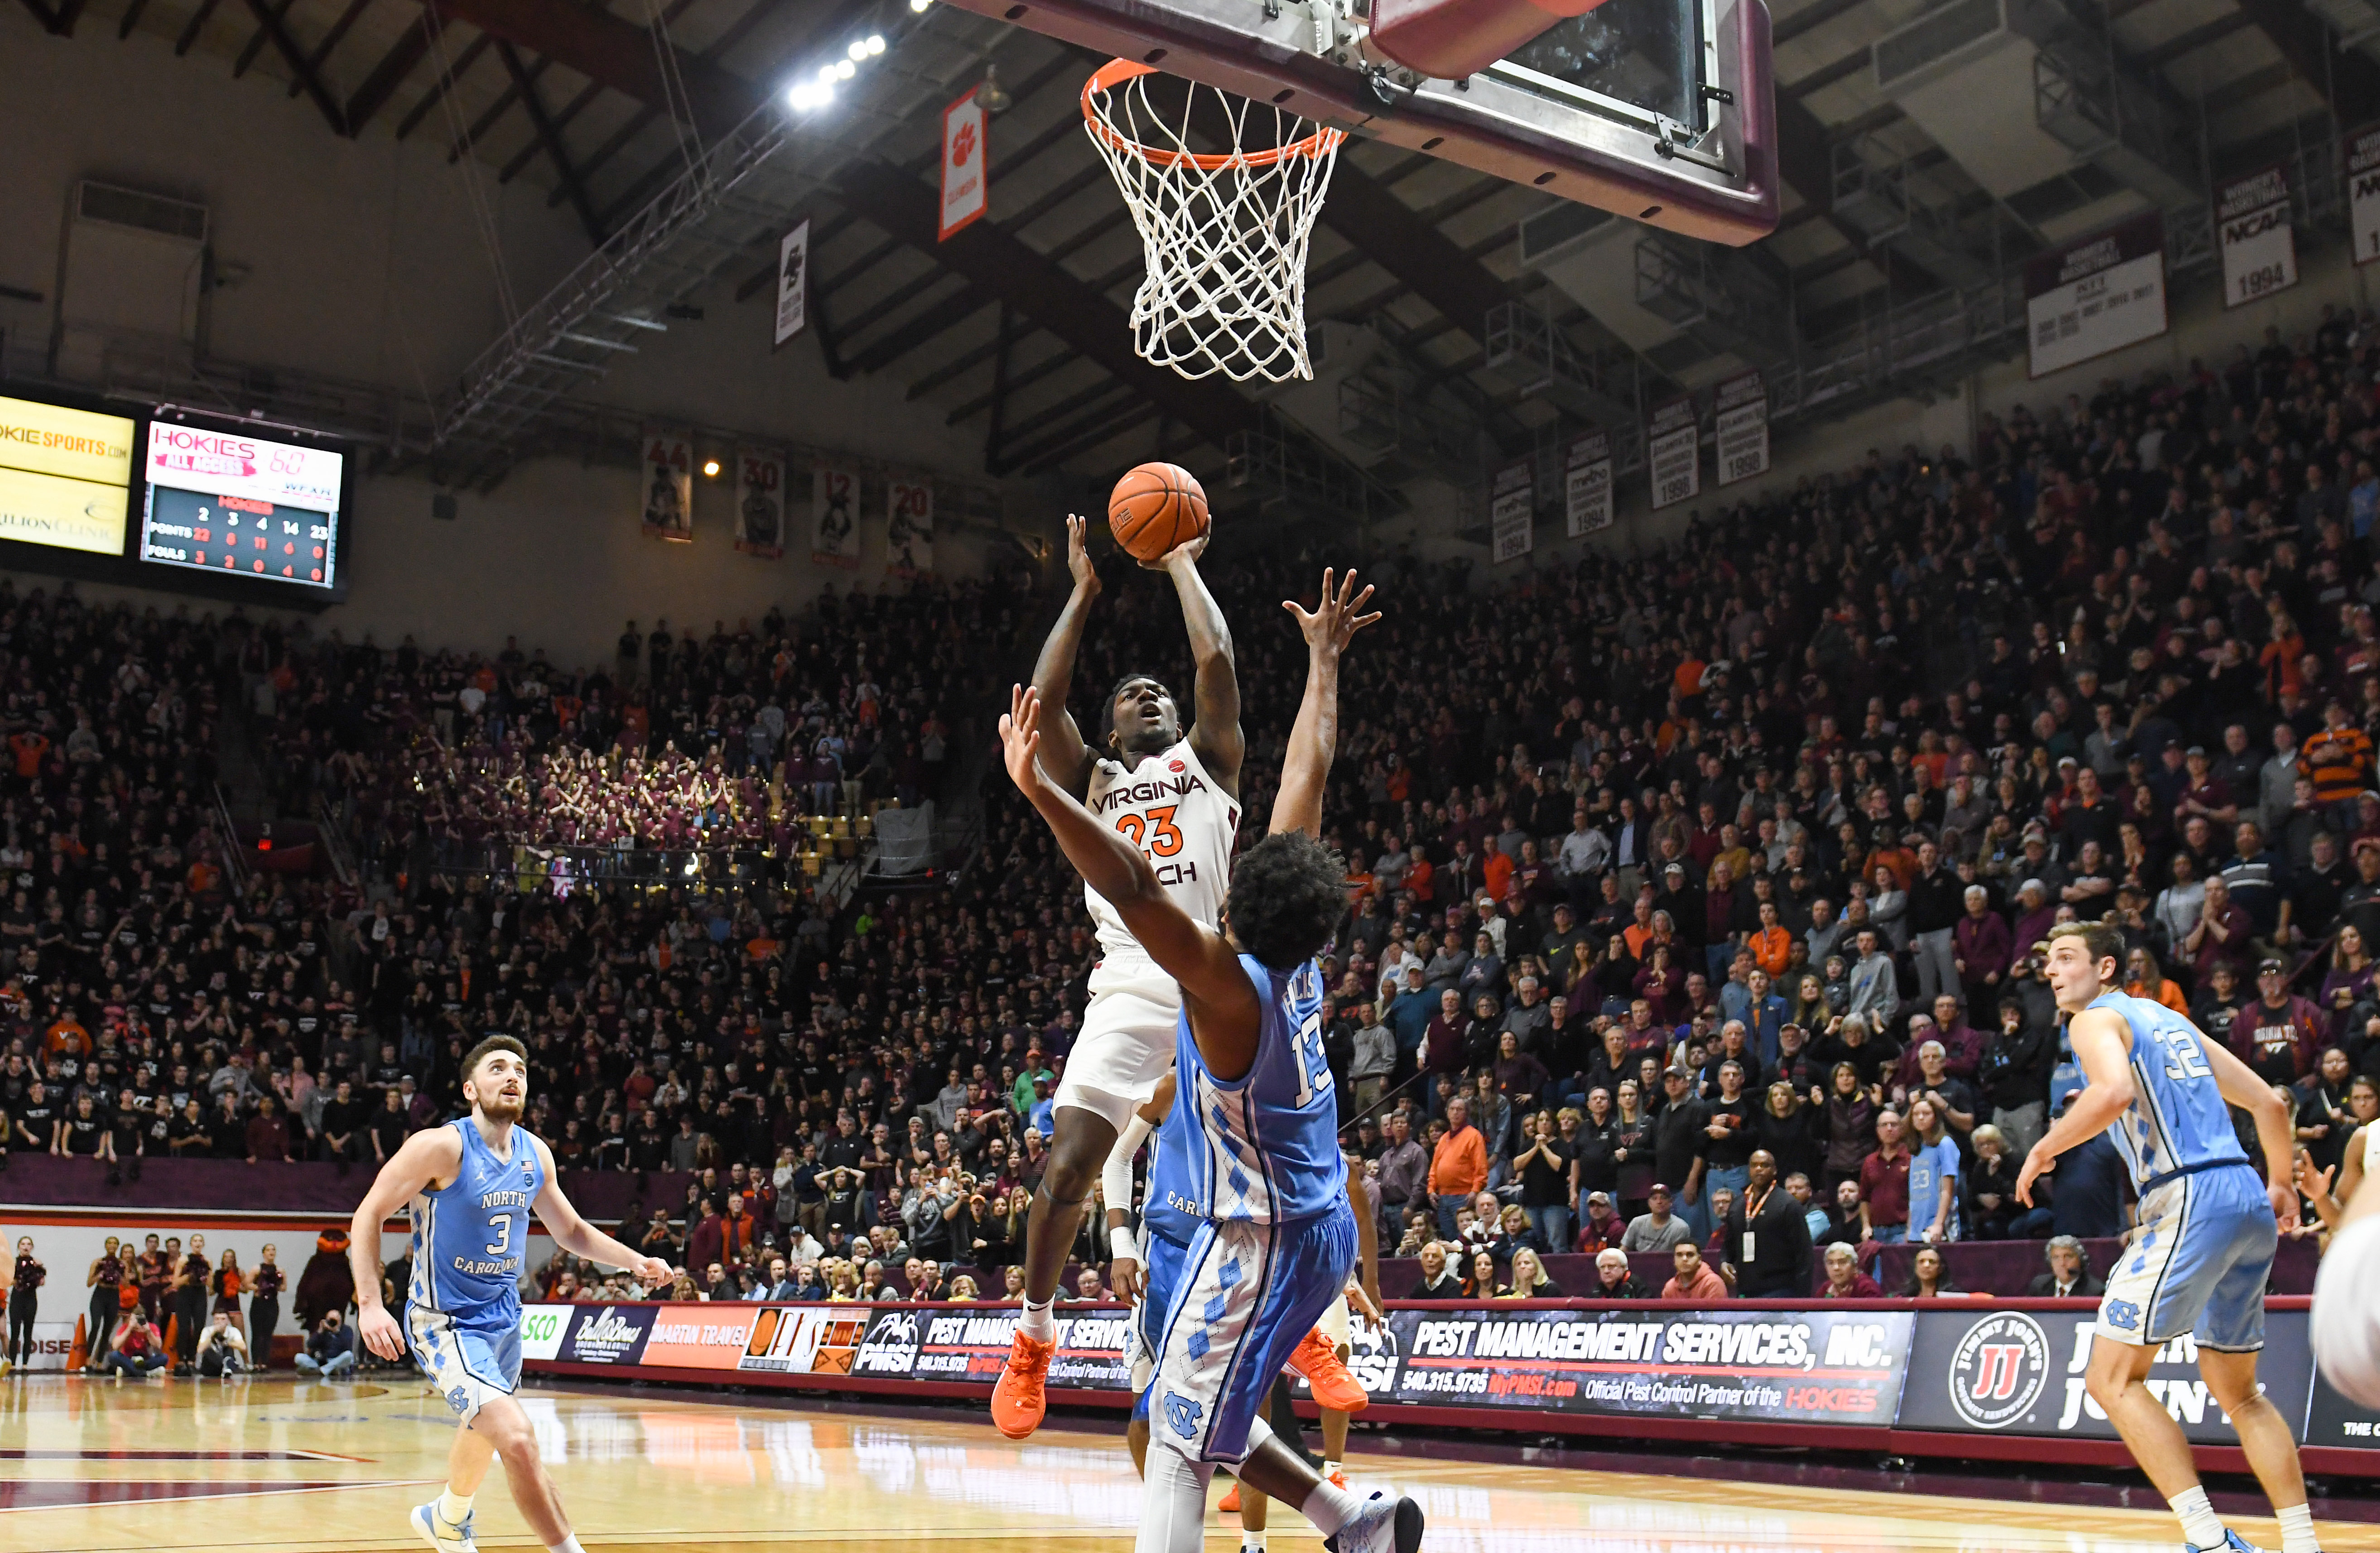 Virginia Tech Basketball: 3 Things We Learned From The Win Over North Carolina